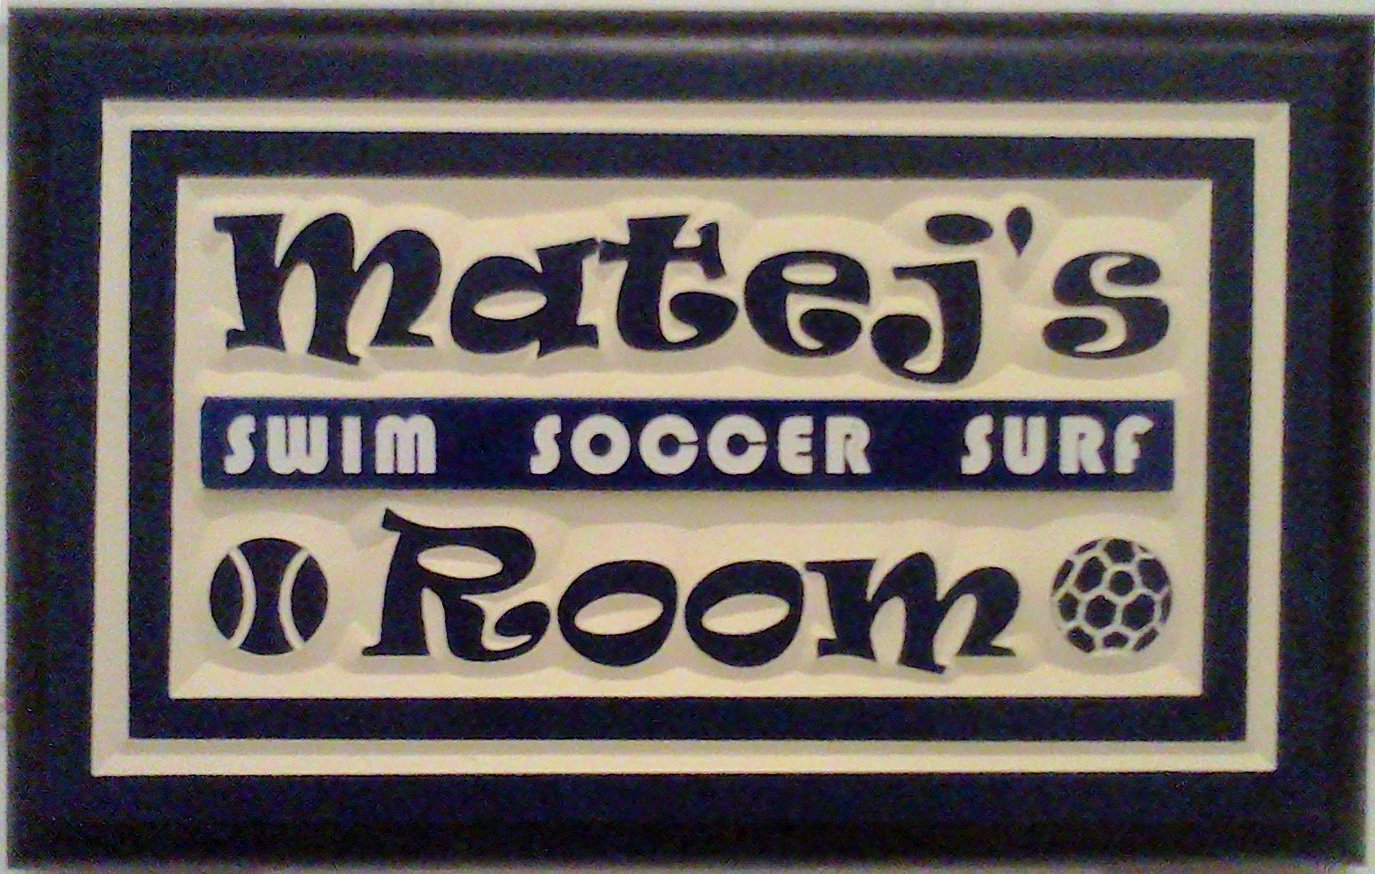 Sign for the door.  Matej decided he wanted the sign to reflect his interests so I laser-cut a correction placard to change his previous preferences.